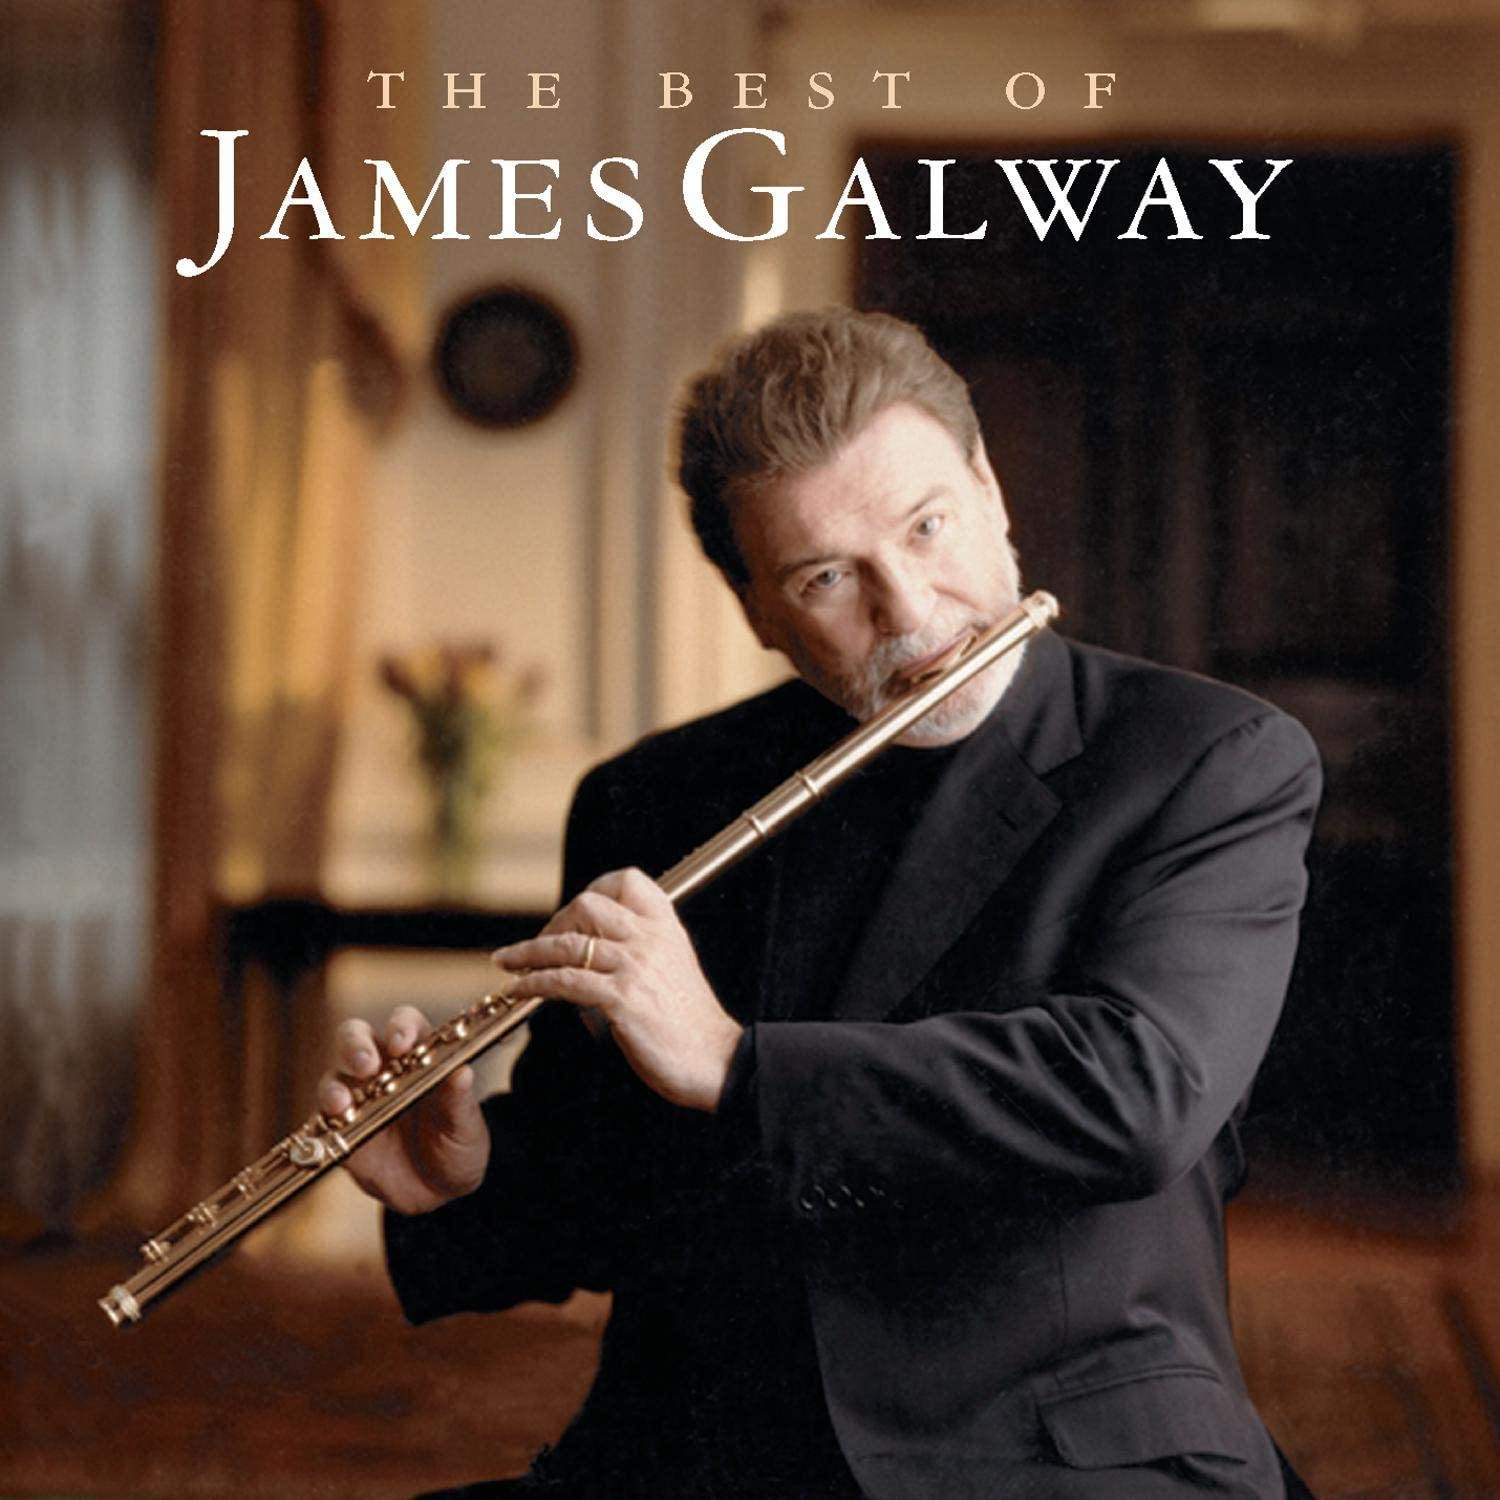 Galway, James/The Best Of James Galway [CD]